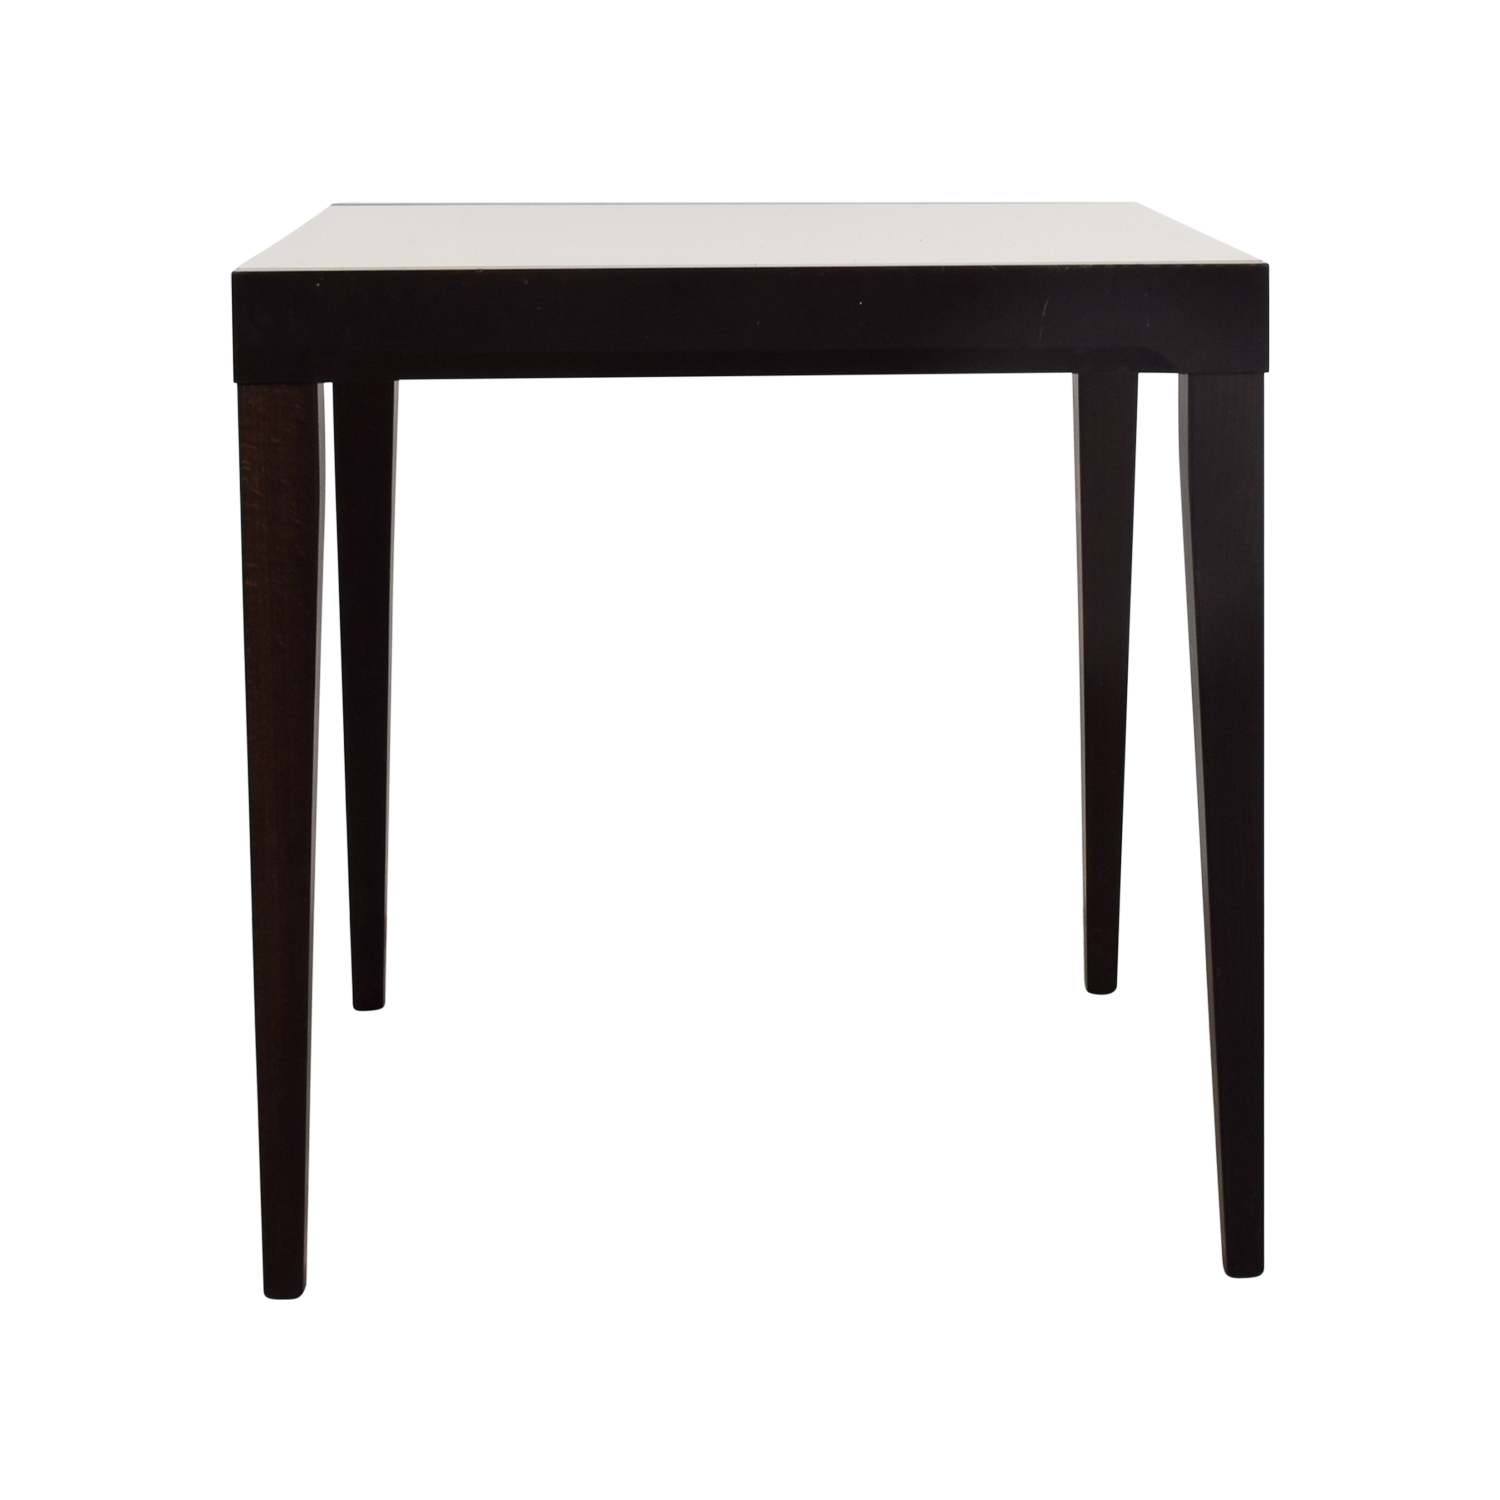 bar tables height table accent seater legs small round long kitchen base bistro full size square mirrored side inch vinyl tablecloth high nightstand extra marble top end and sofa